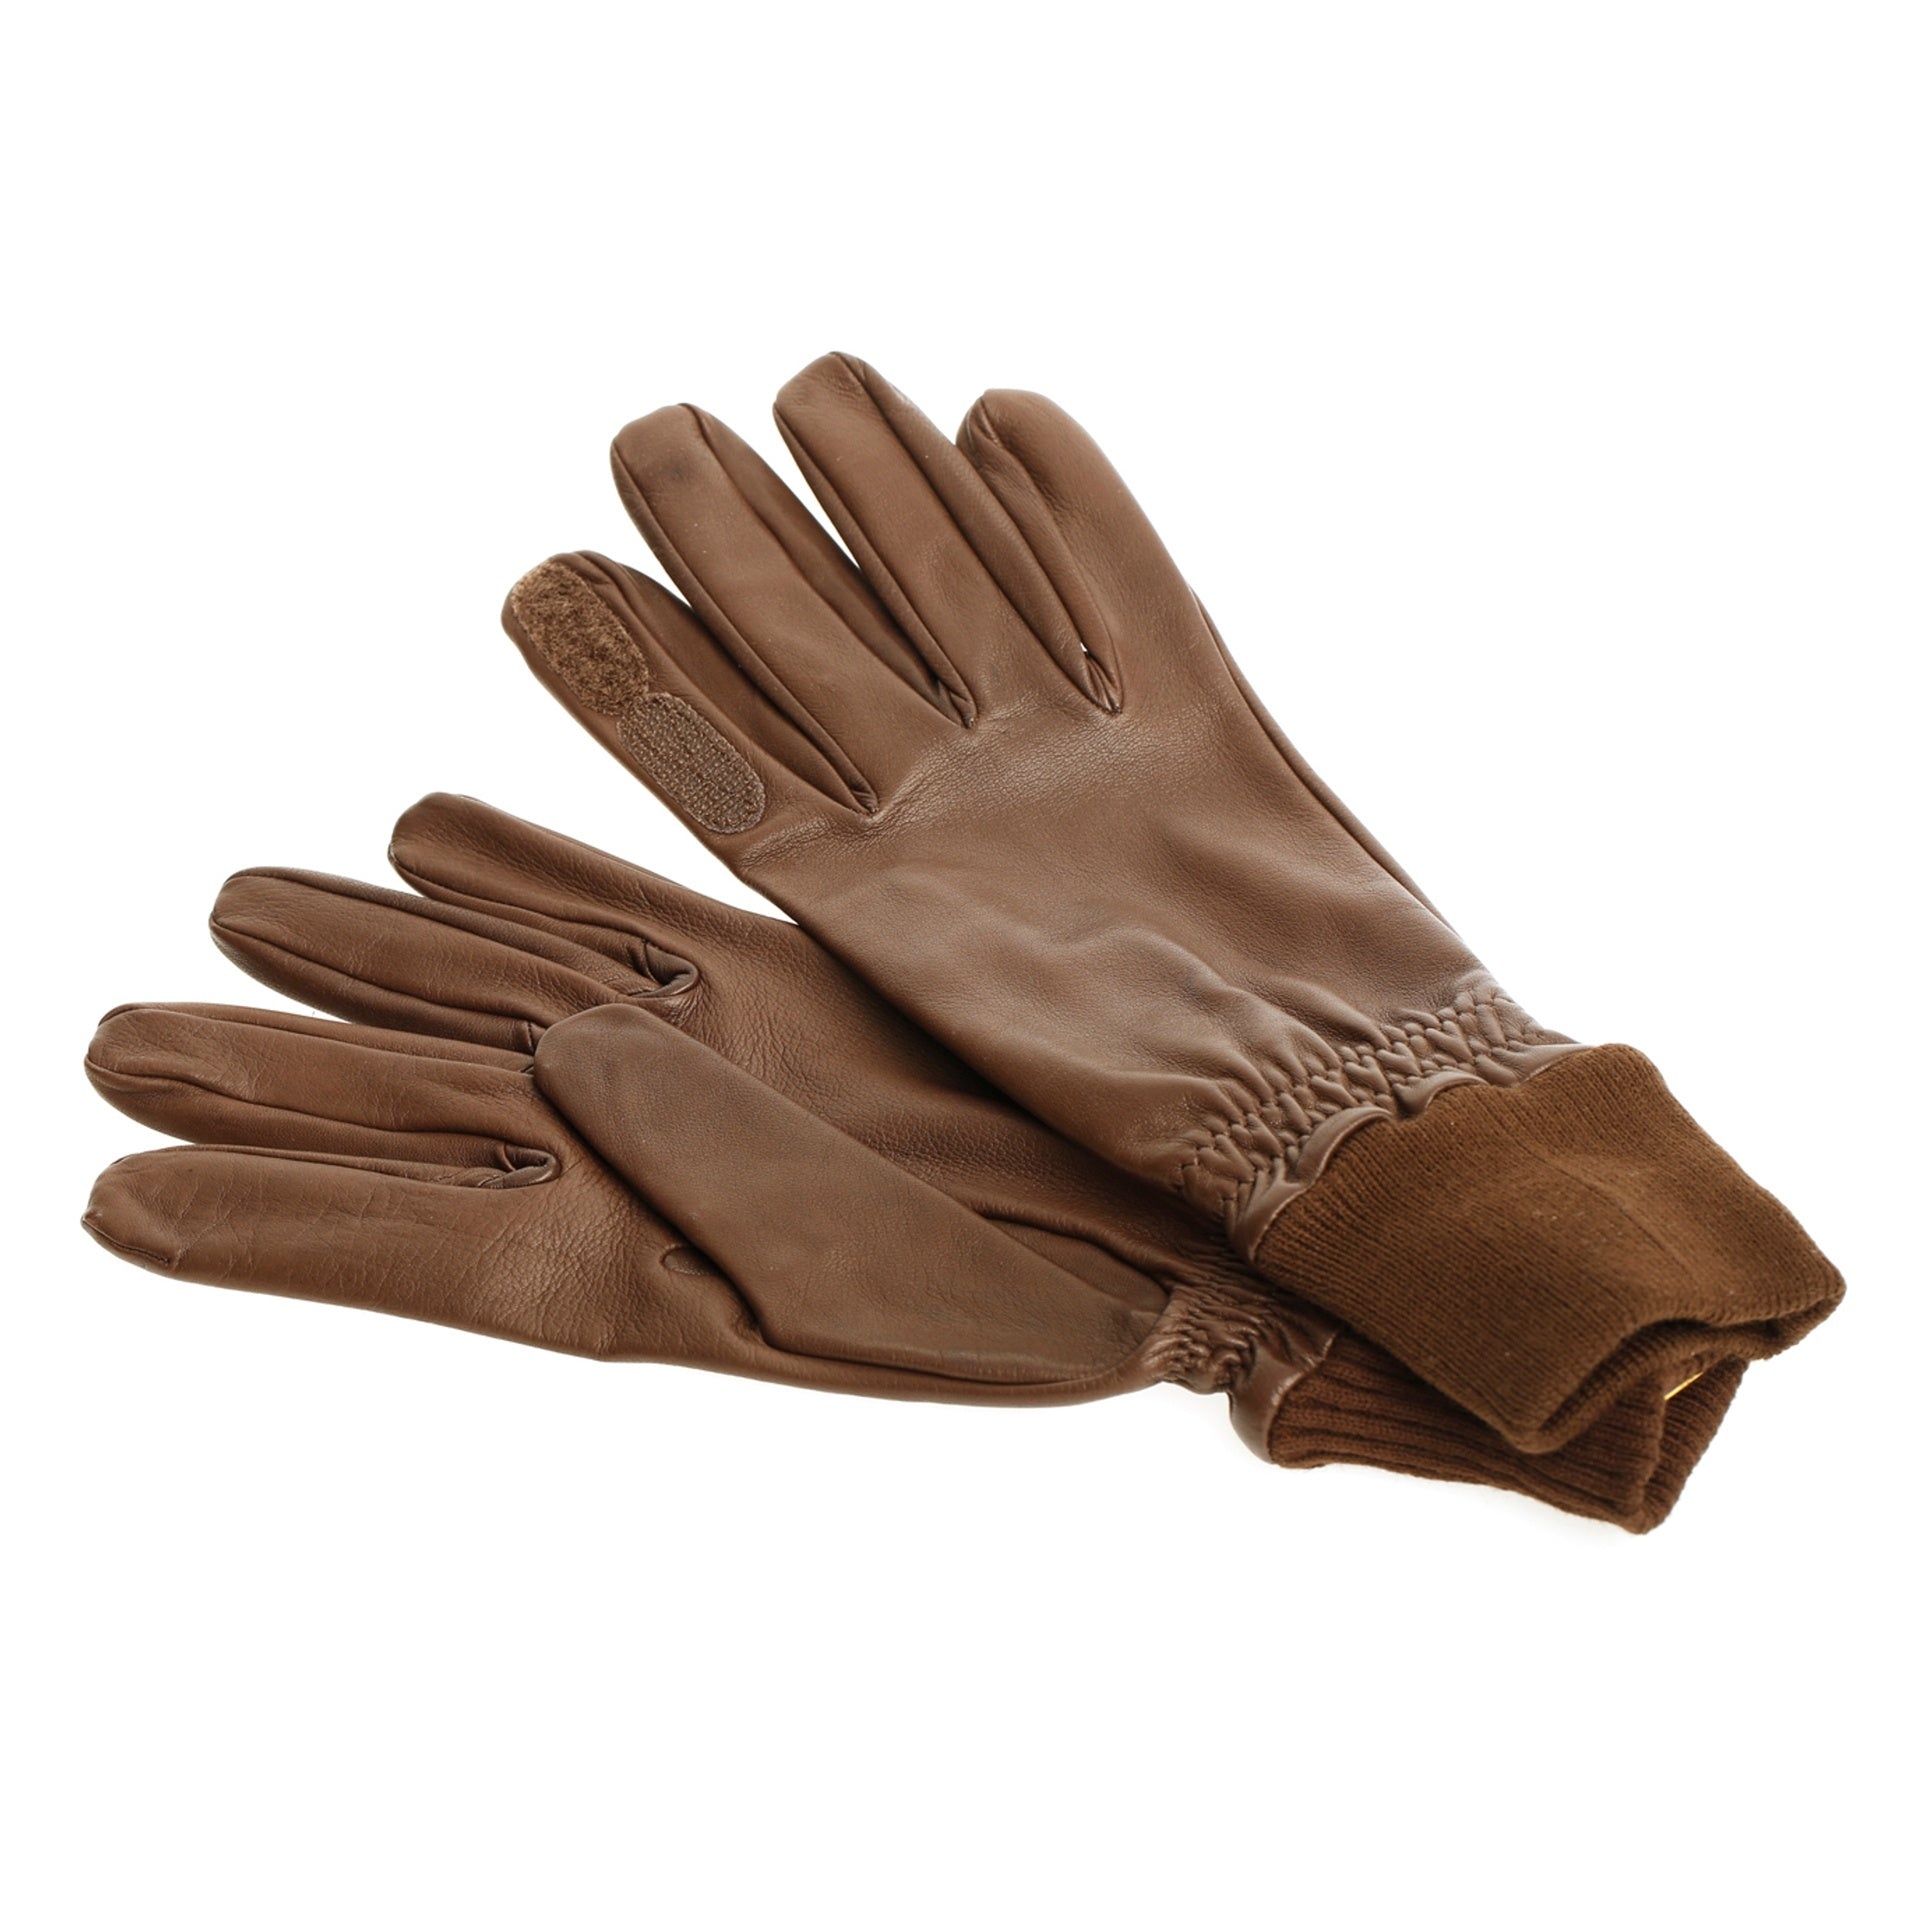 Gants de tir Gamesman marron